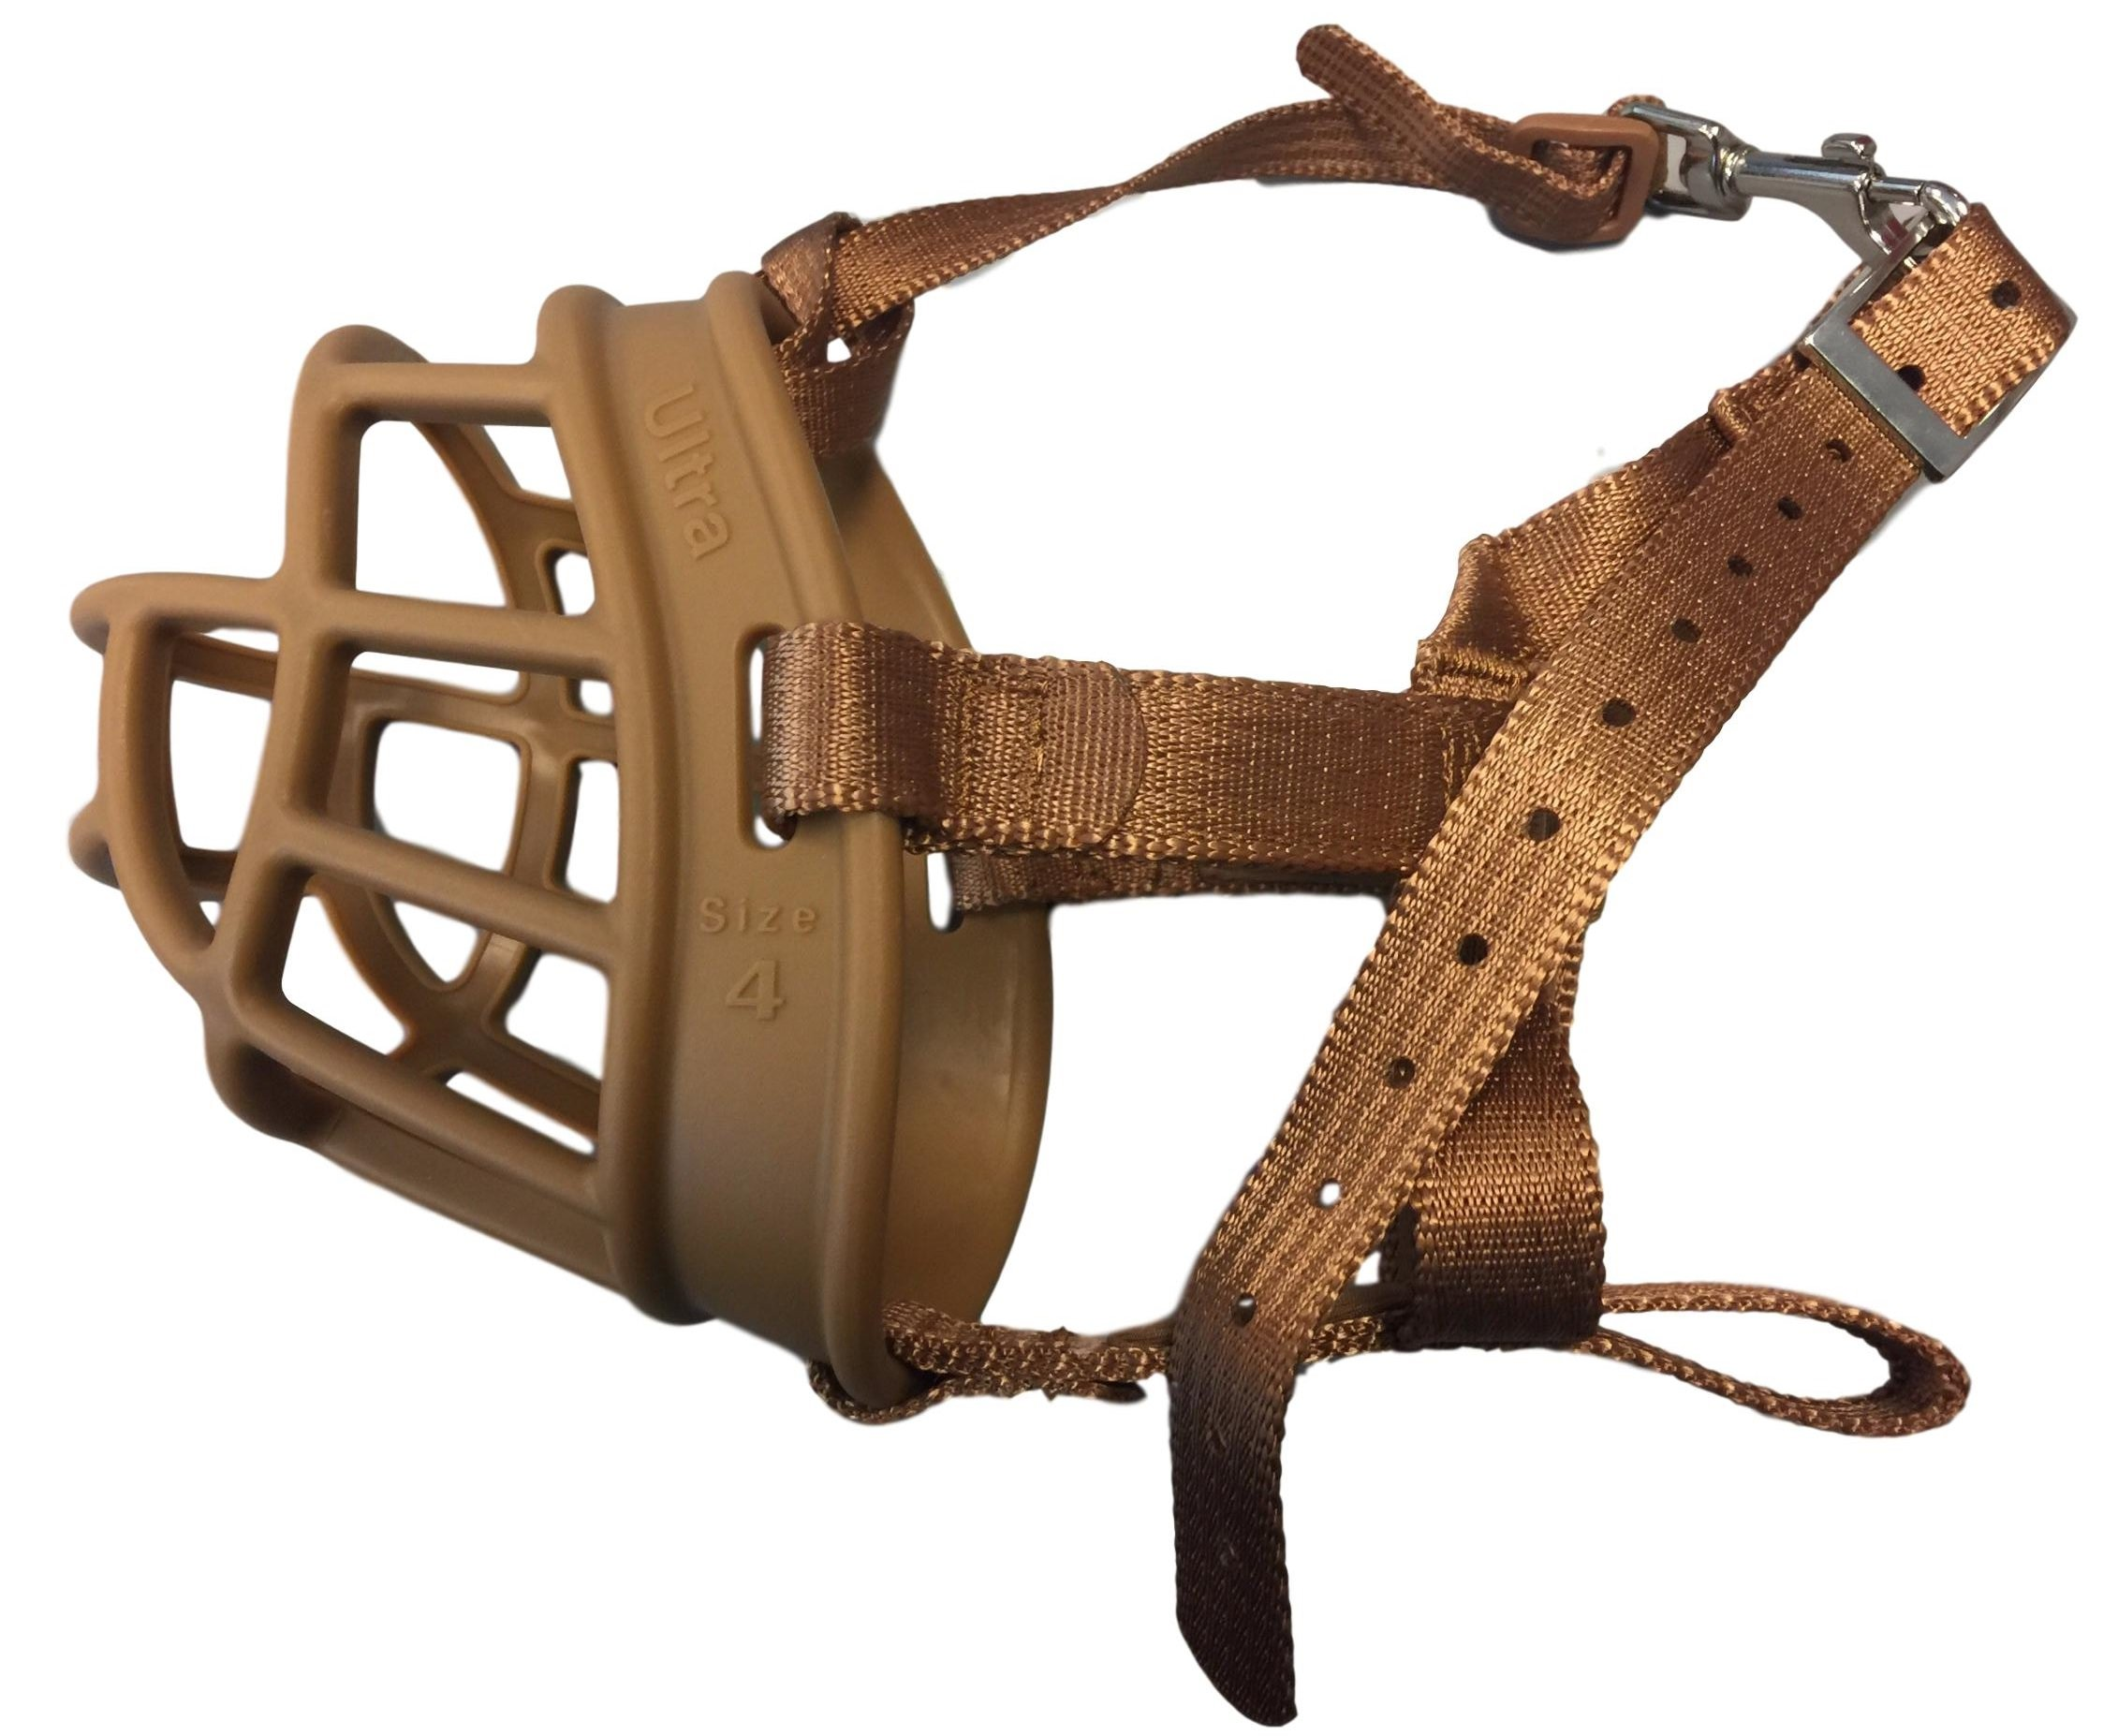 The Company of Animals Baskerville Ultra Basket Dog Muzzle Adjustable and Comfortable Secure Fit - Durable Lightweight Rubber - Stops Biting, safe retraining of aggressive dogs- Size-3 Tan